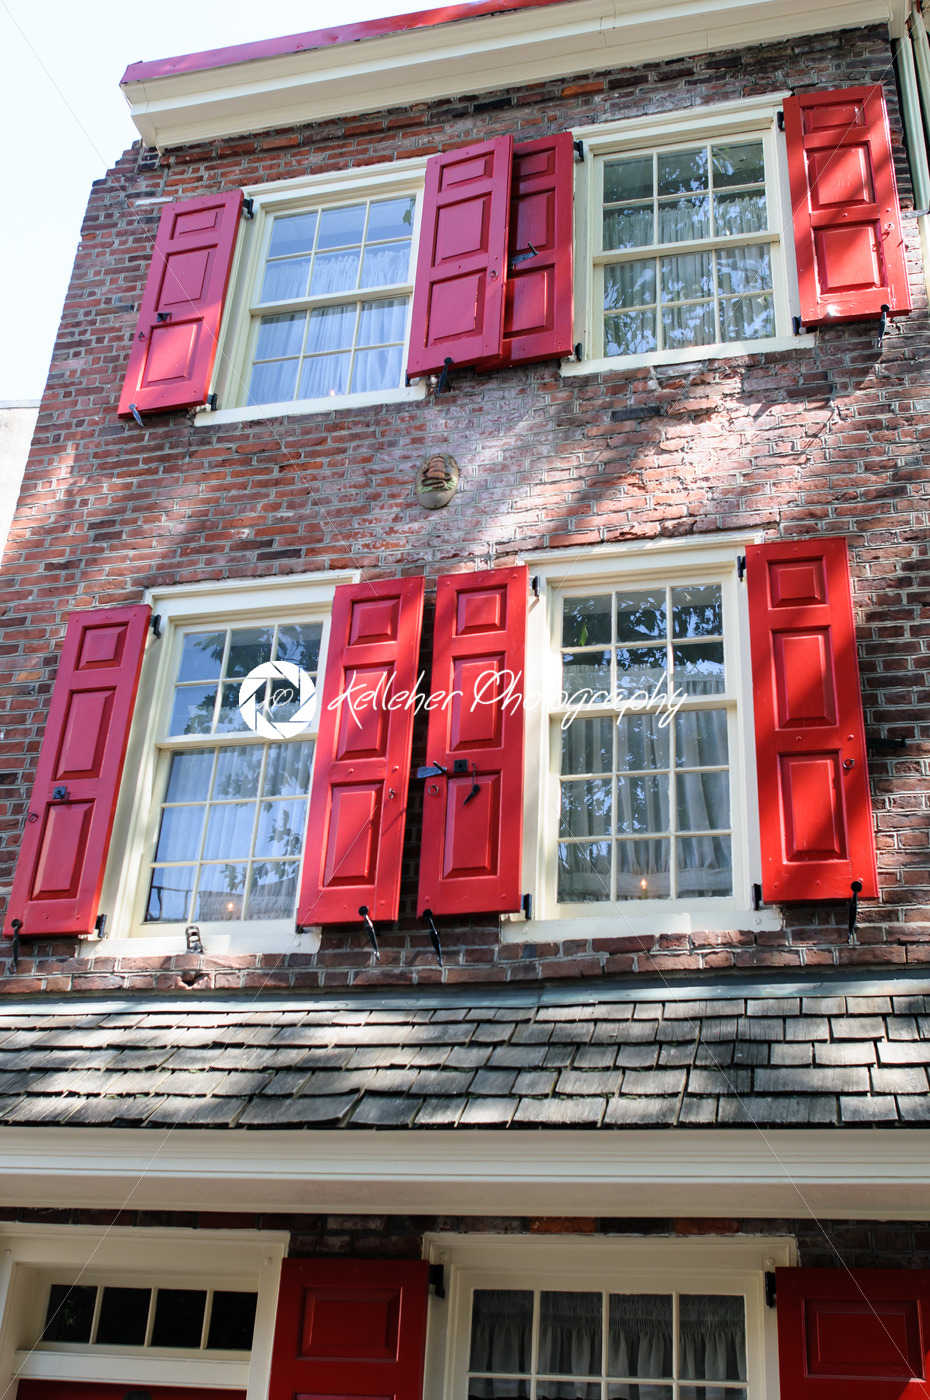 PHILADELPHIA, PA – MAY 14: The historic Old City in Philadelphia, Pennsylvania. Elfreth's Alley, referred to as the nation's oldest residential street, dating to 1702 on May 14, 2015 - Kelleher Photography Store